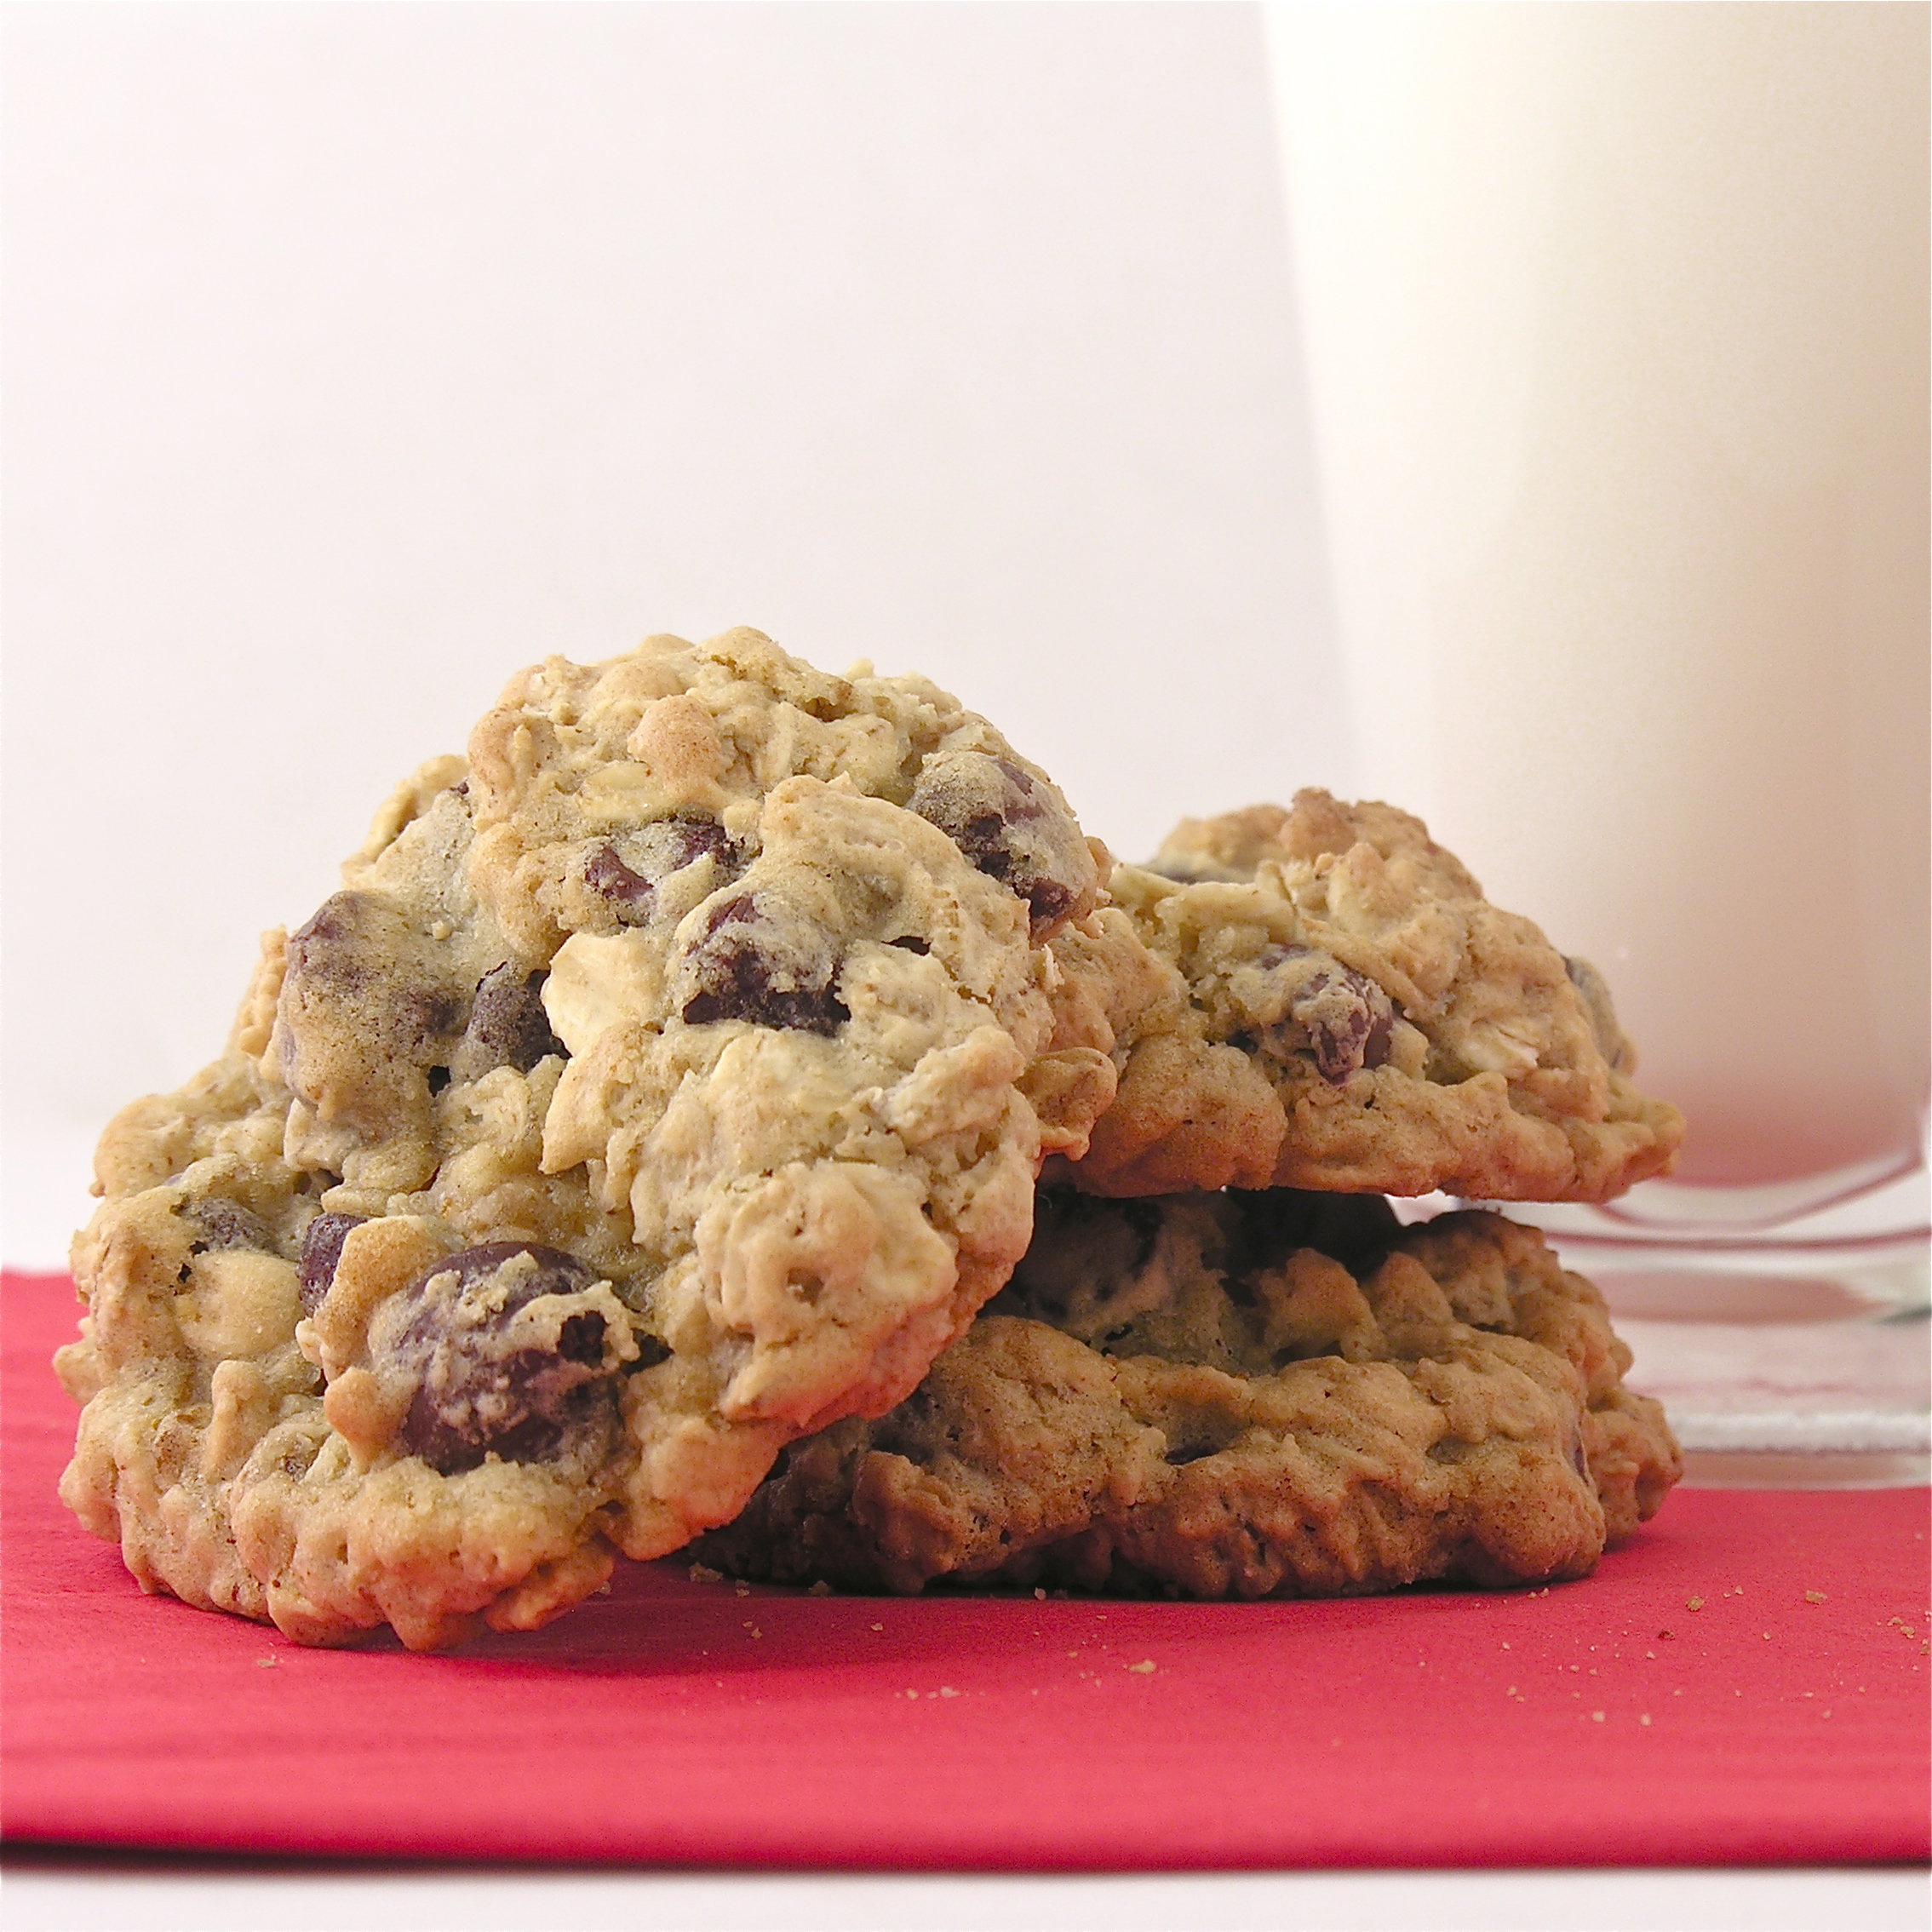 Chocolate Chip Oatmeal Cookies | eASYbAKED